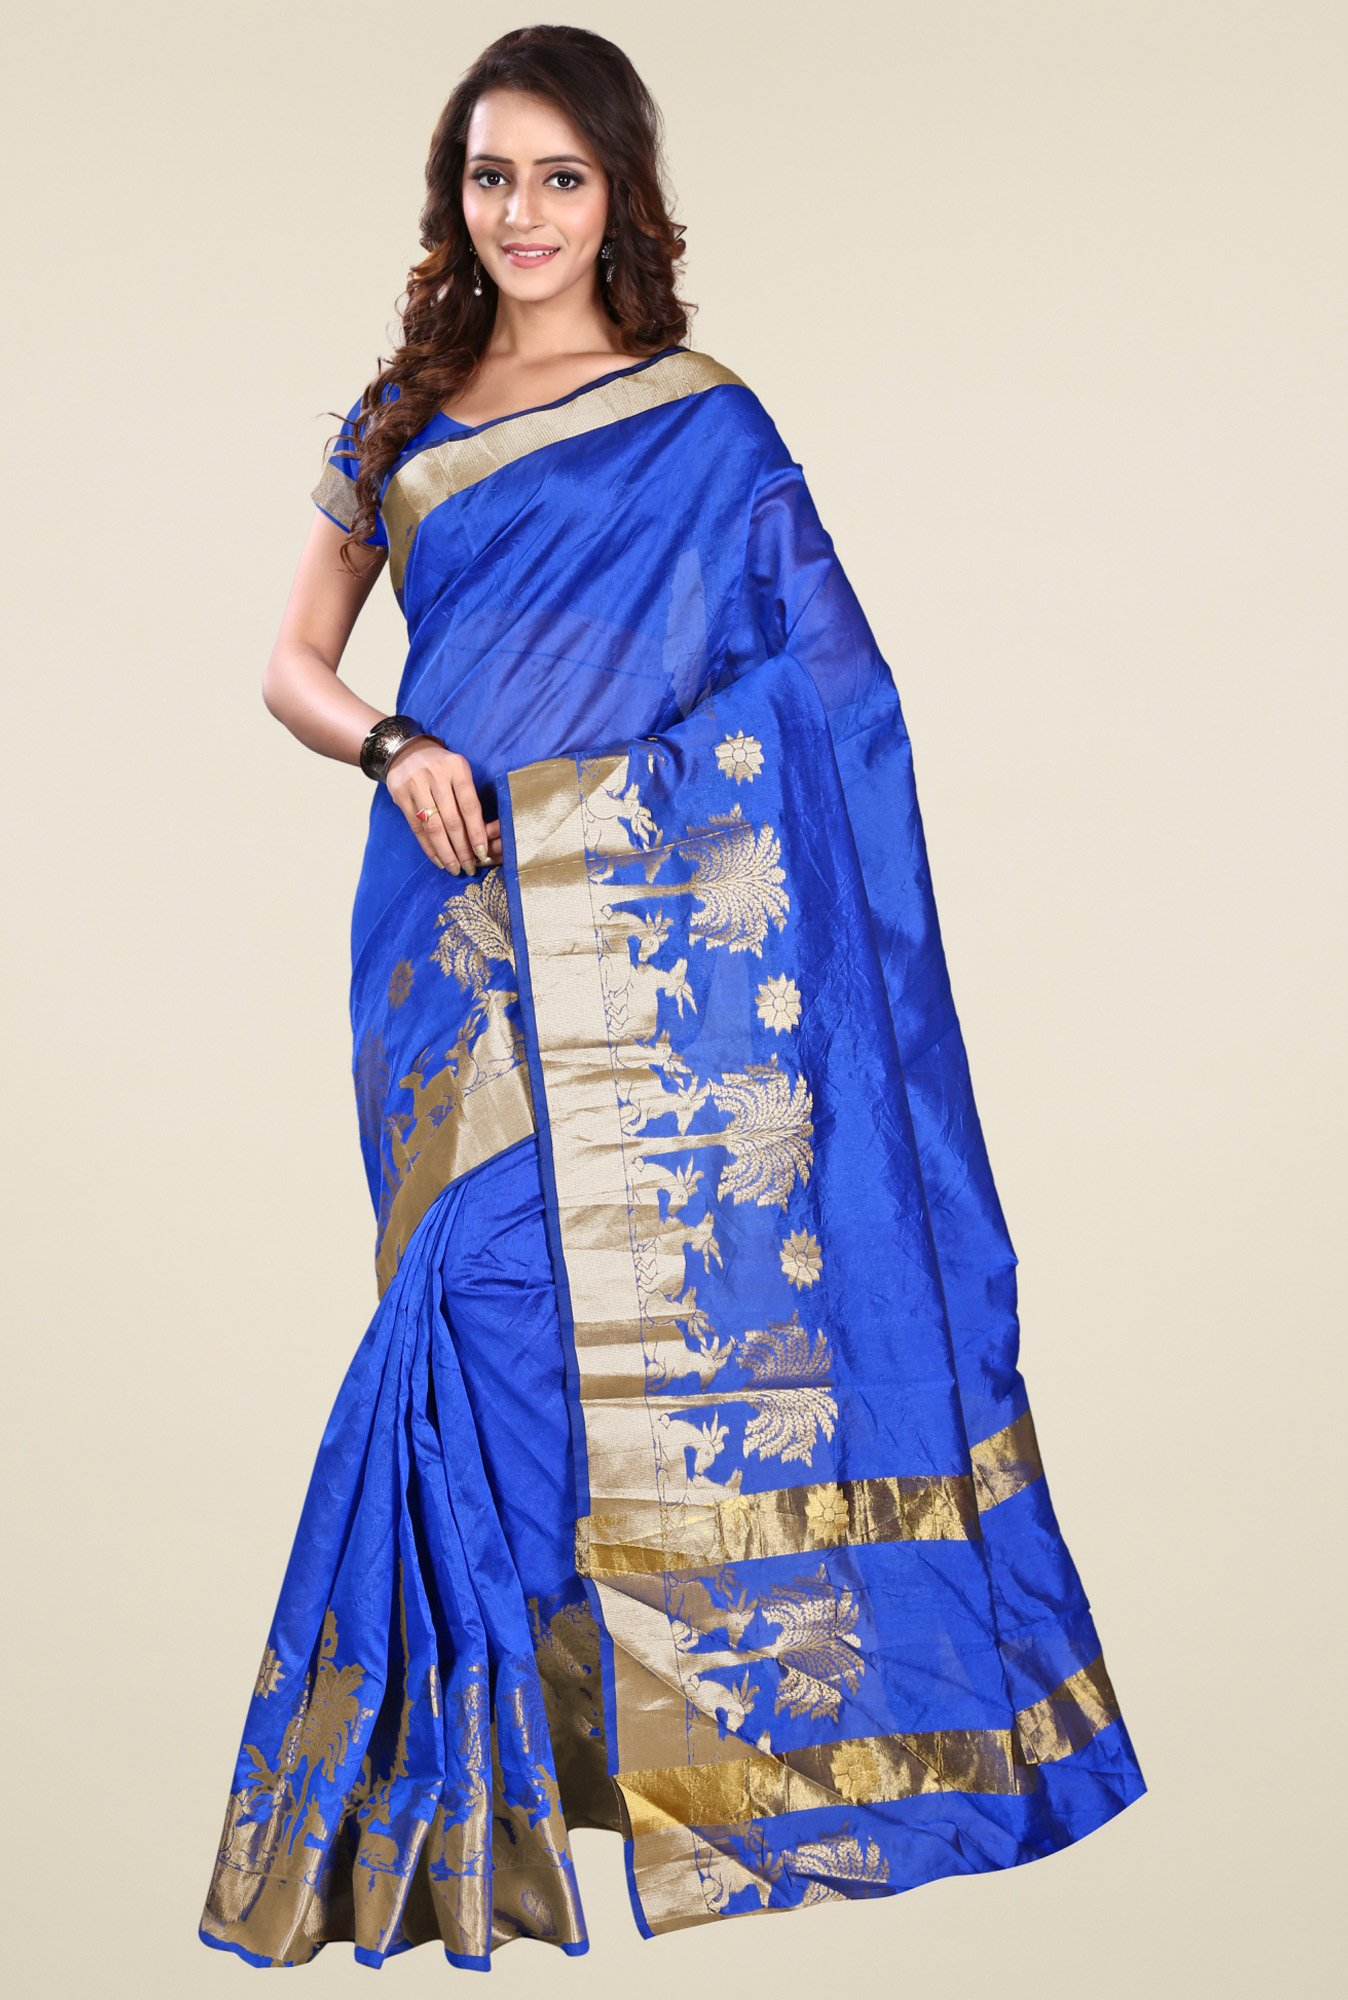 Triveni Blue Printed Saree